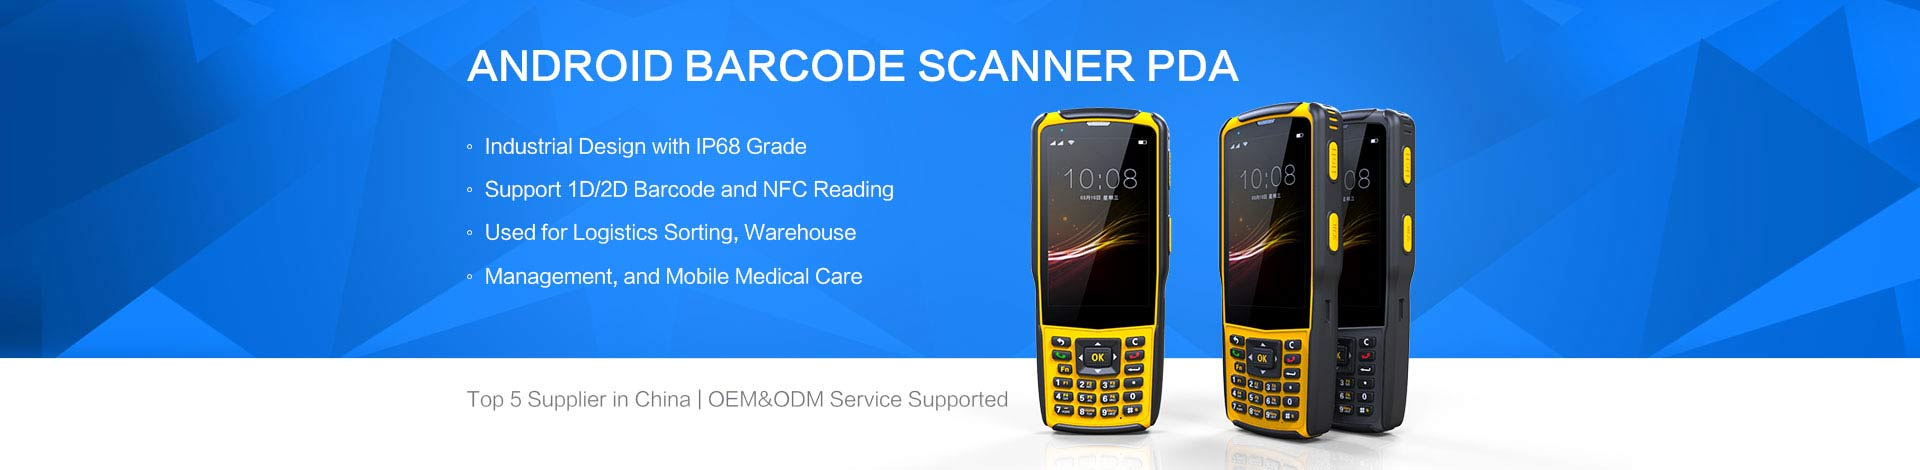 pda,barcode scanner module,android pda,barcode scanner pda